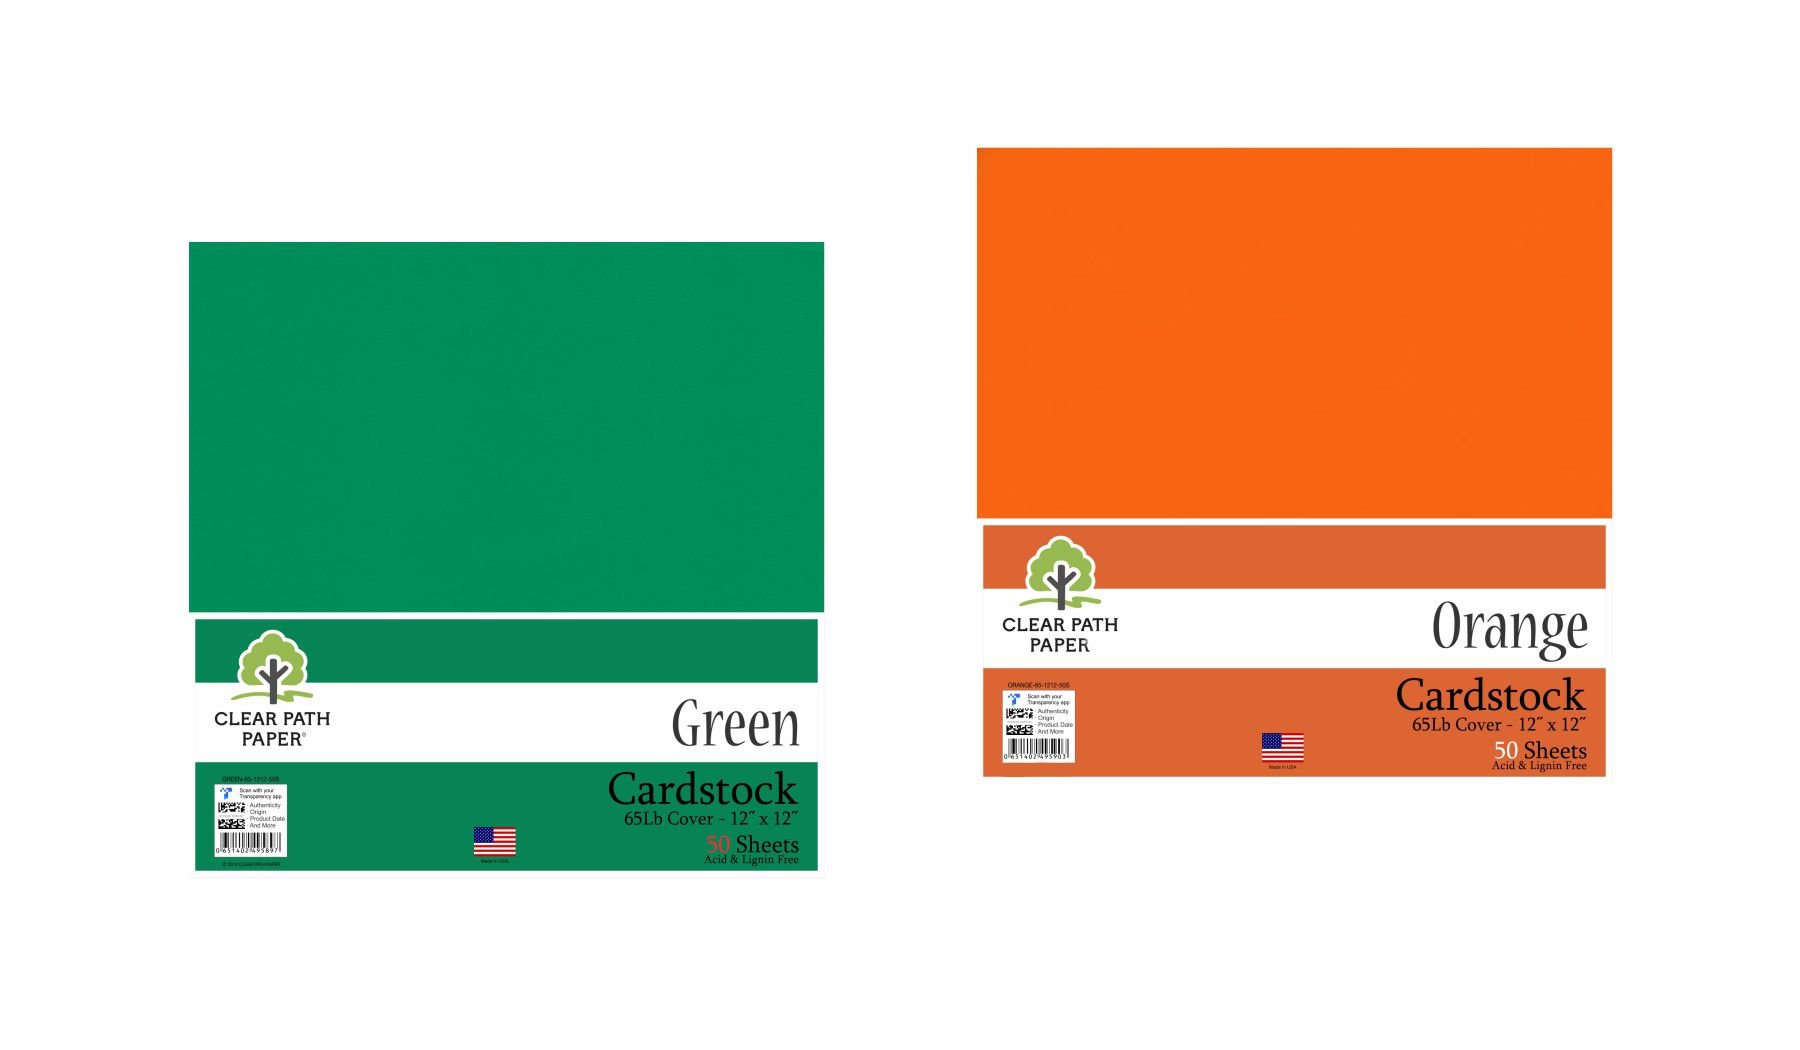 Image of an Amazon bundle of Green and Orange cardstock packs